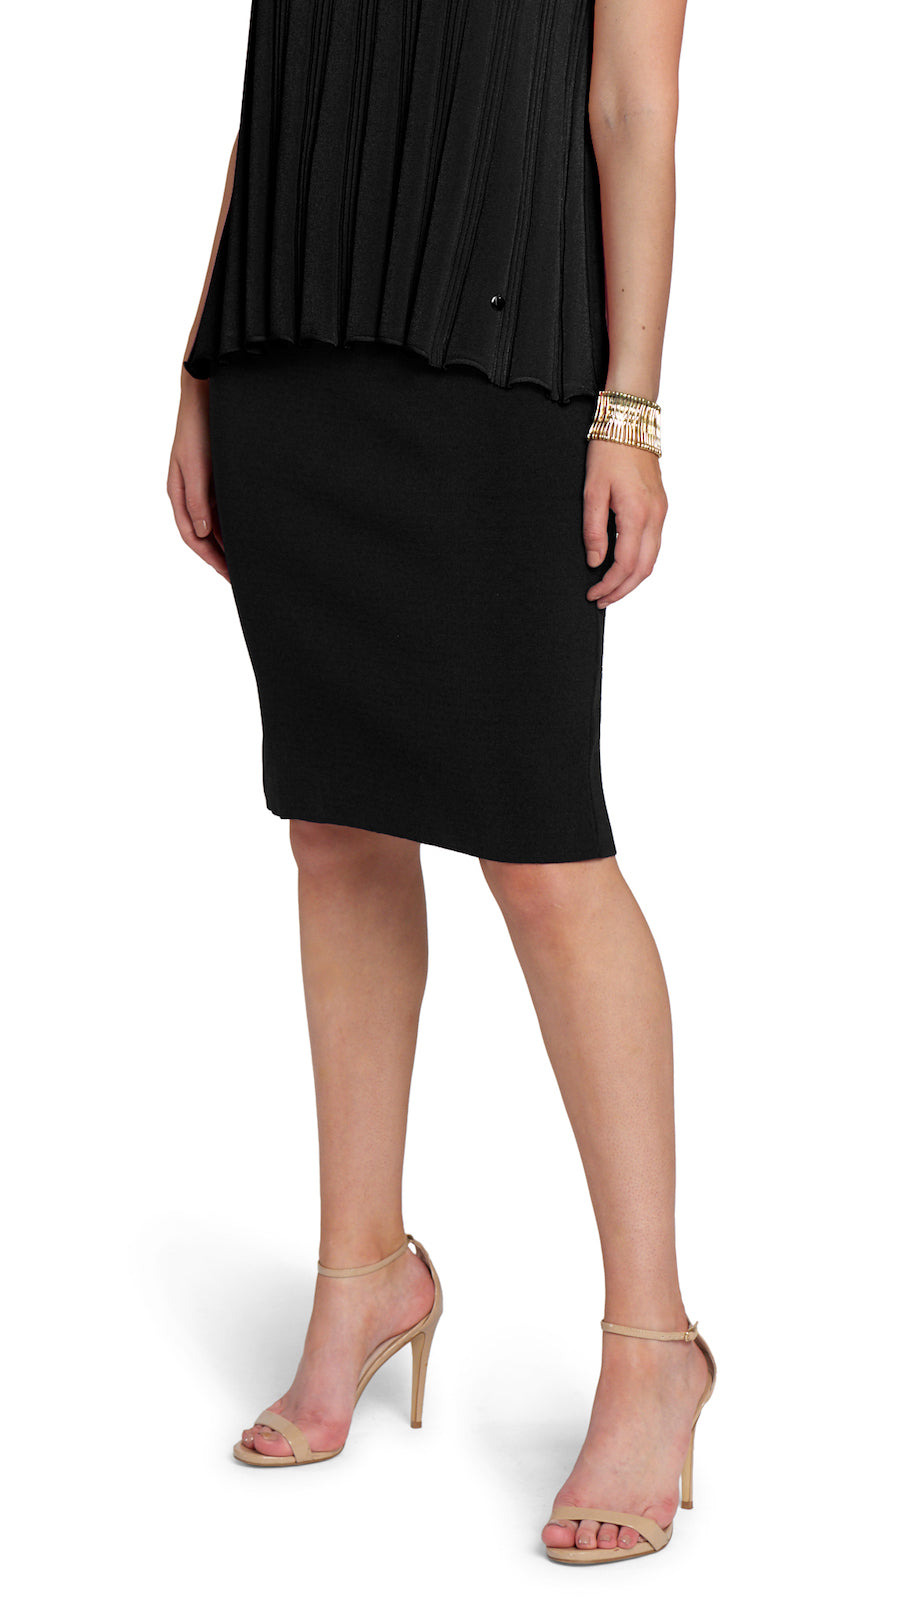 Cora Milano-Knit Pencil Skirt, Black